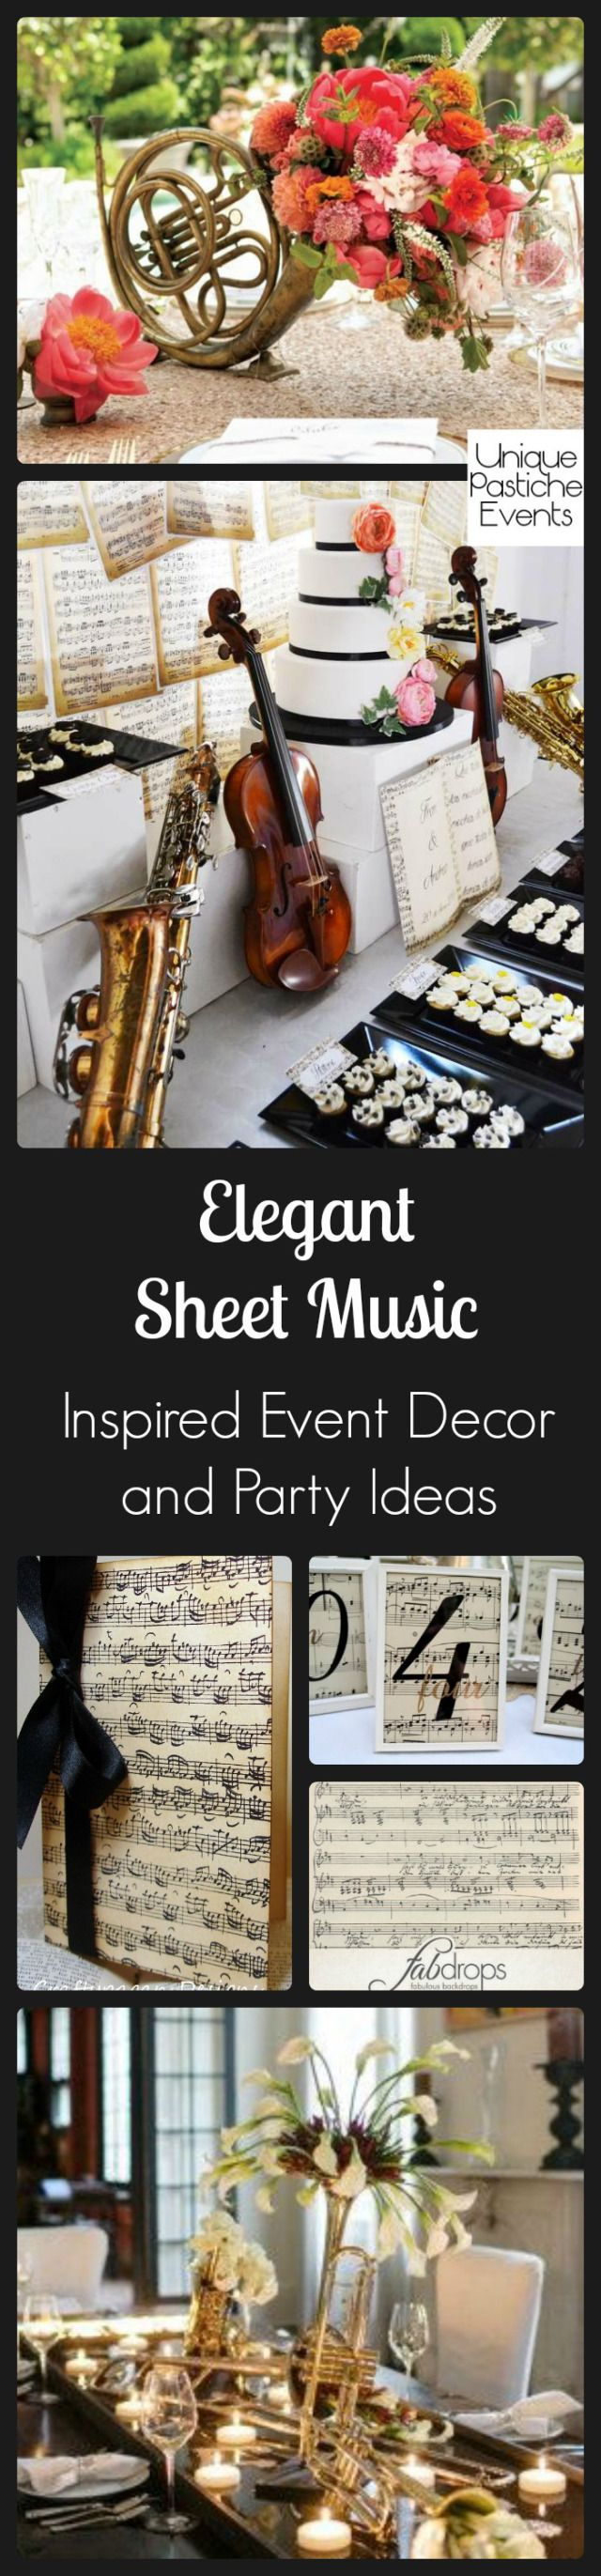 Elegant Sheet Music Inspired Event Decor and Party Ideas #IdeaBoard #InspirationBoard